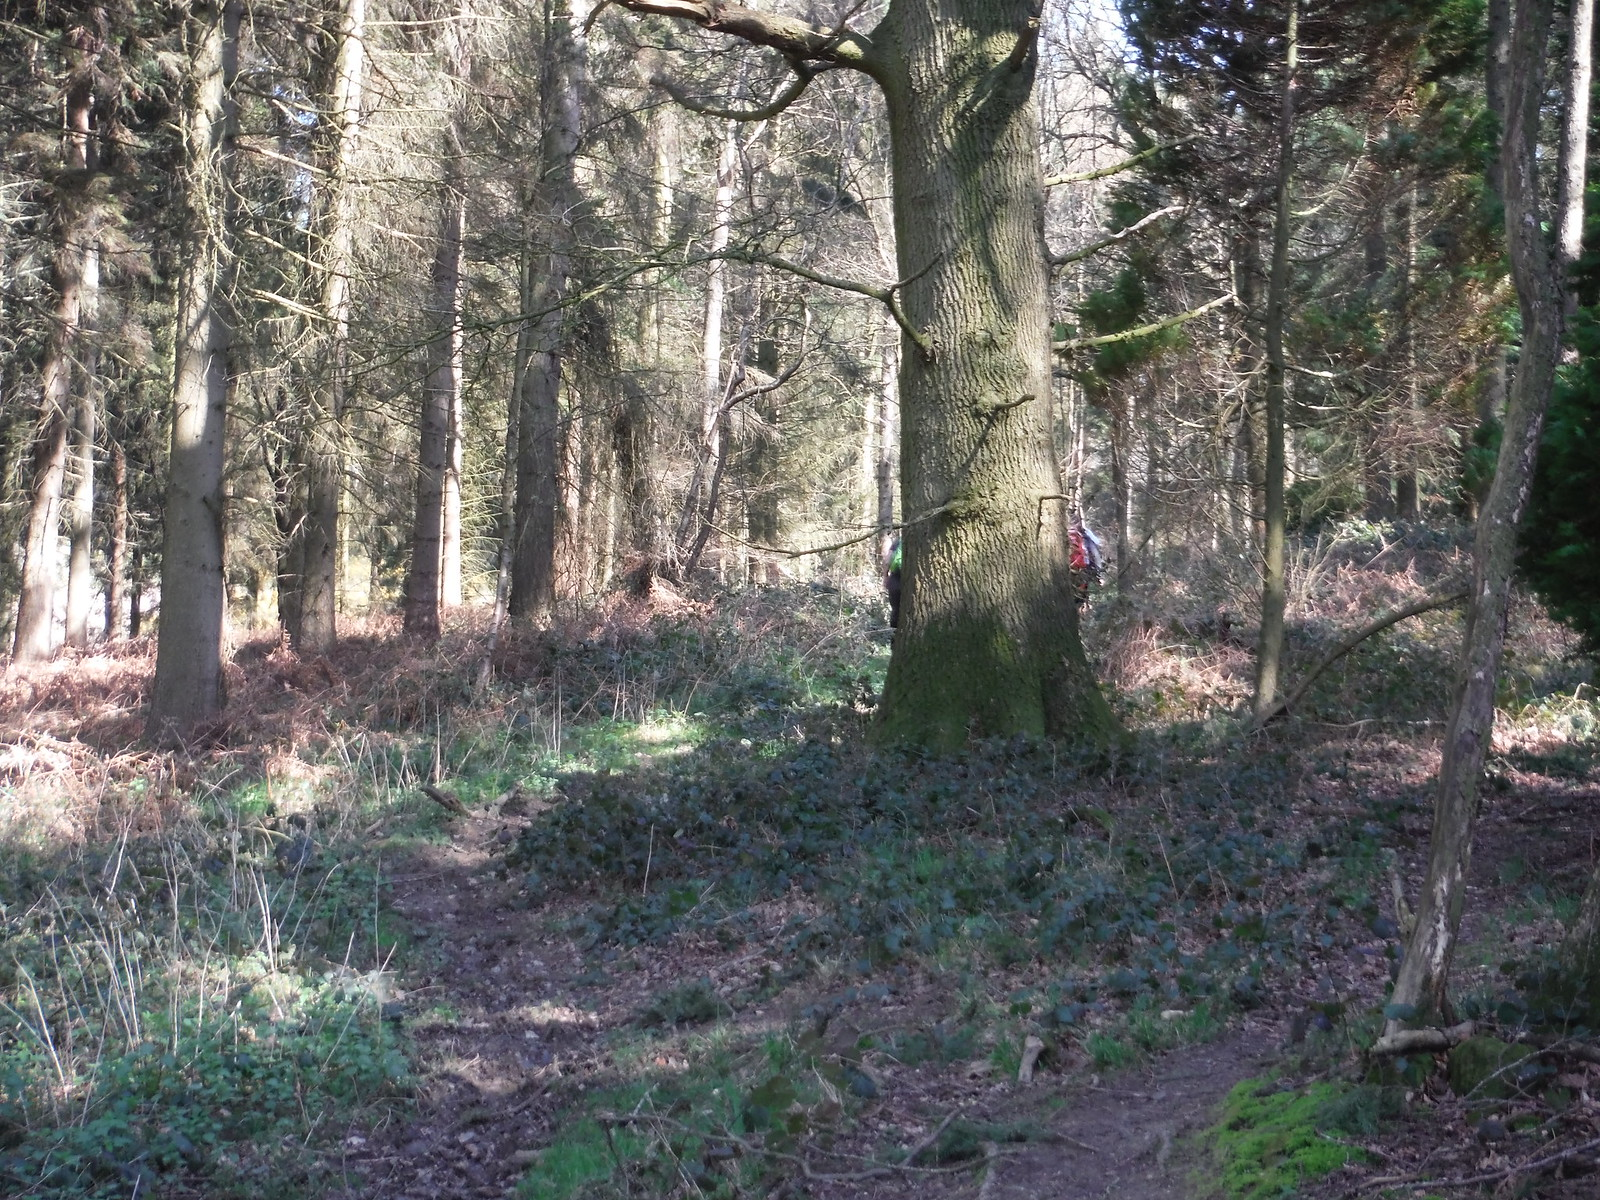 Burgess Copse SWC Walk 260 Aldermaston to Woolhampton [Midgham Station] (via Frilsham)